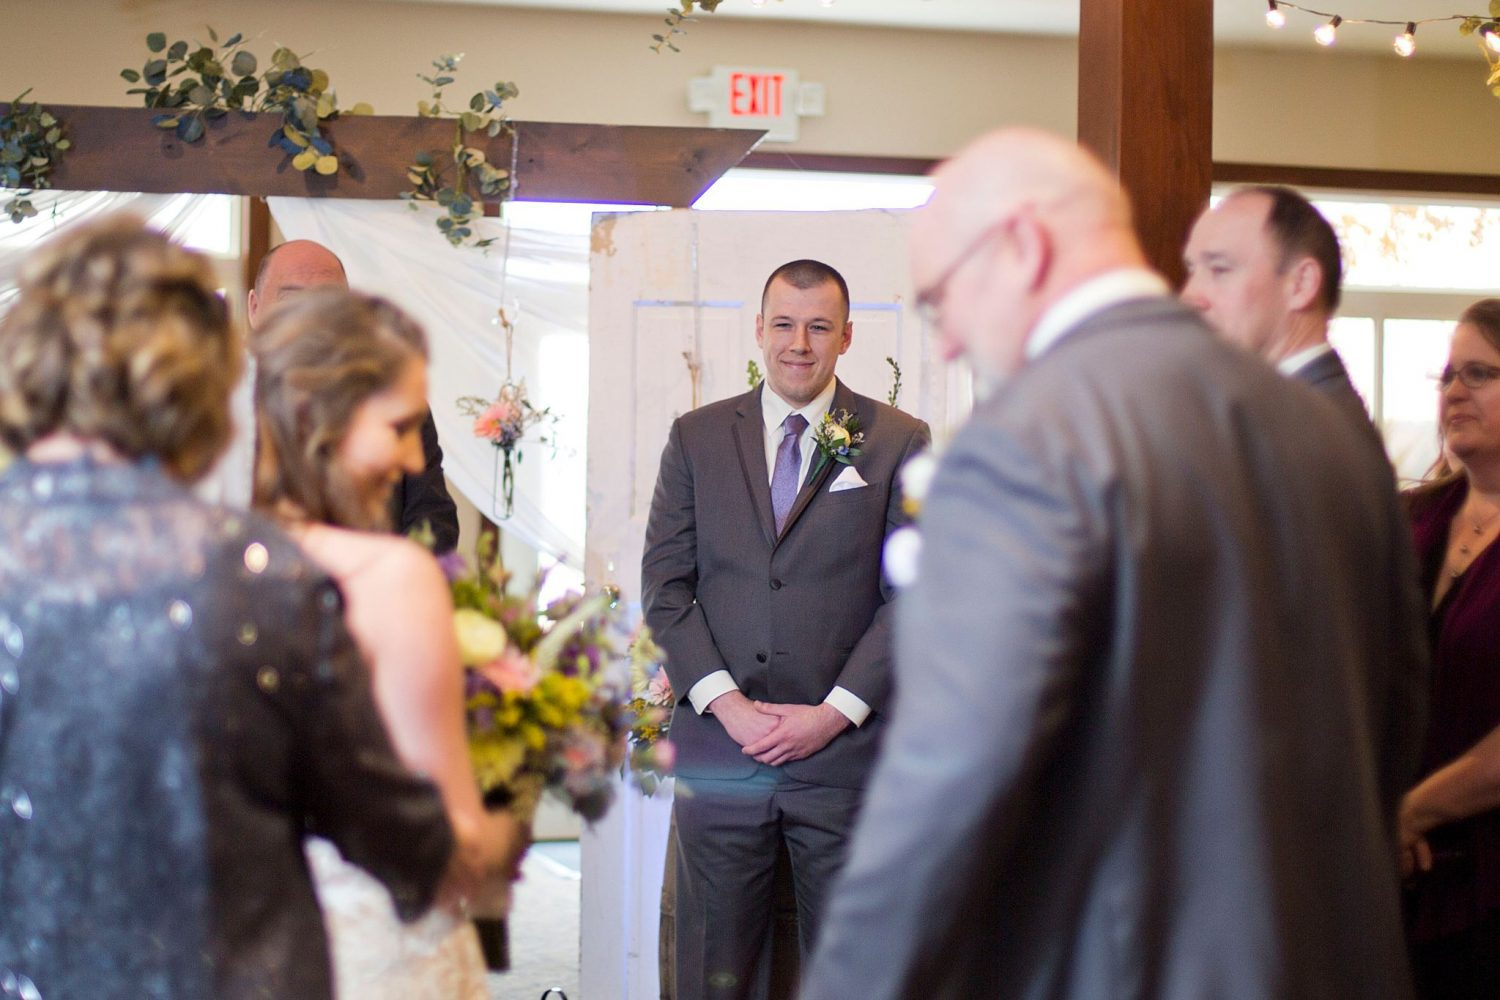 Groom gazes at his bride with a smile as she hugs her parents.